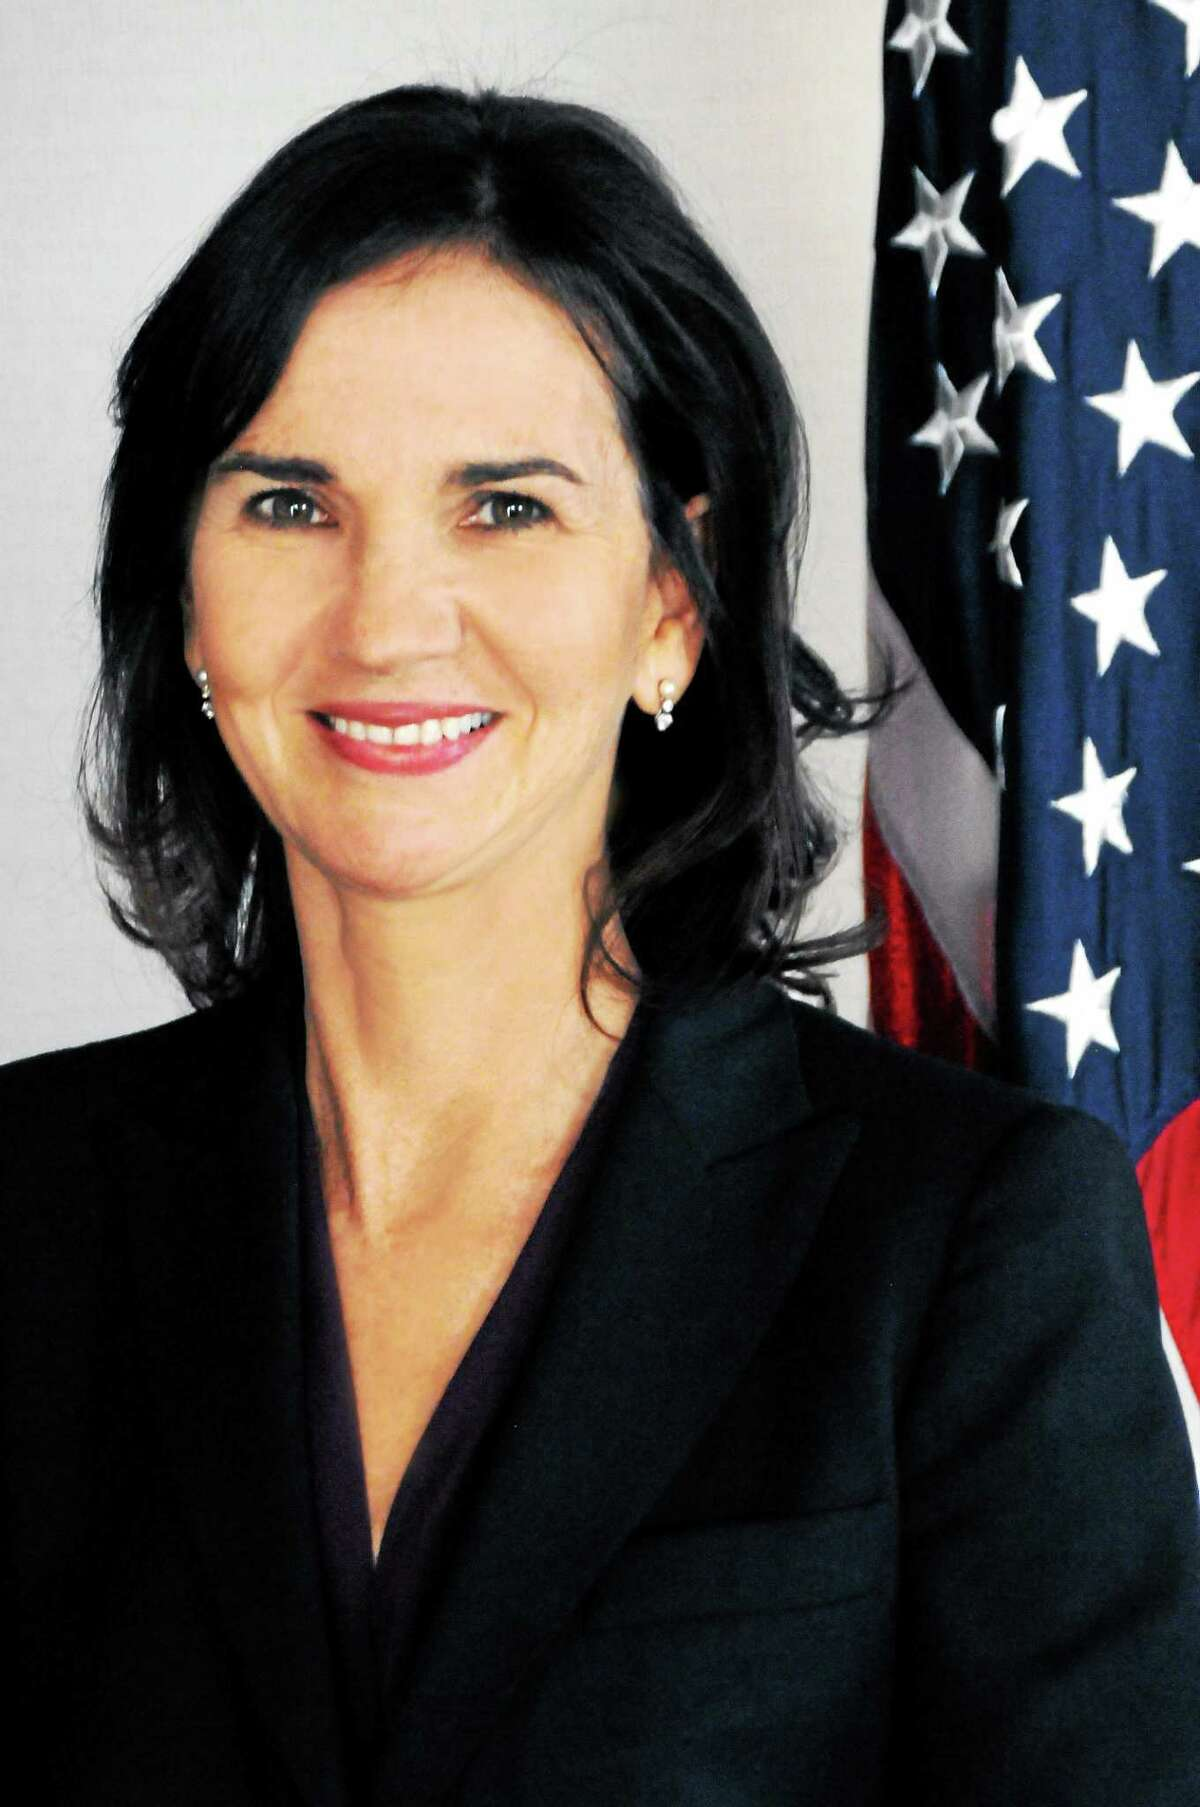 Connecticut U.S. Attorney Deirdre M. Daly